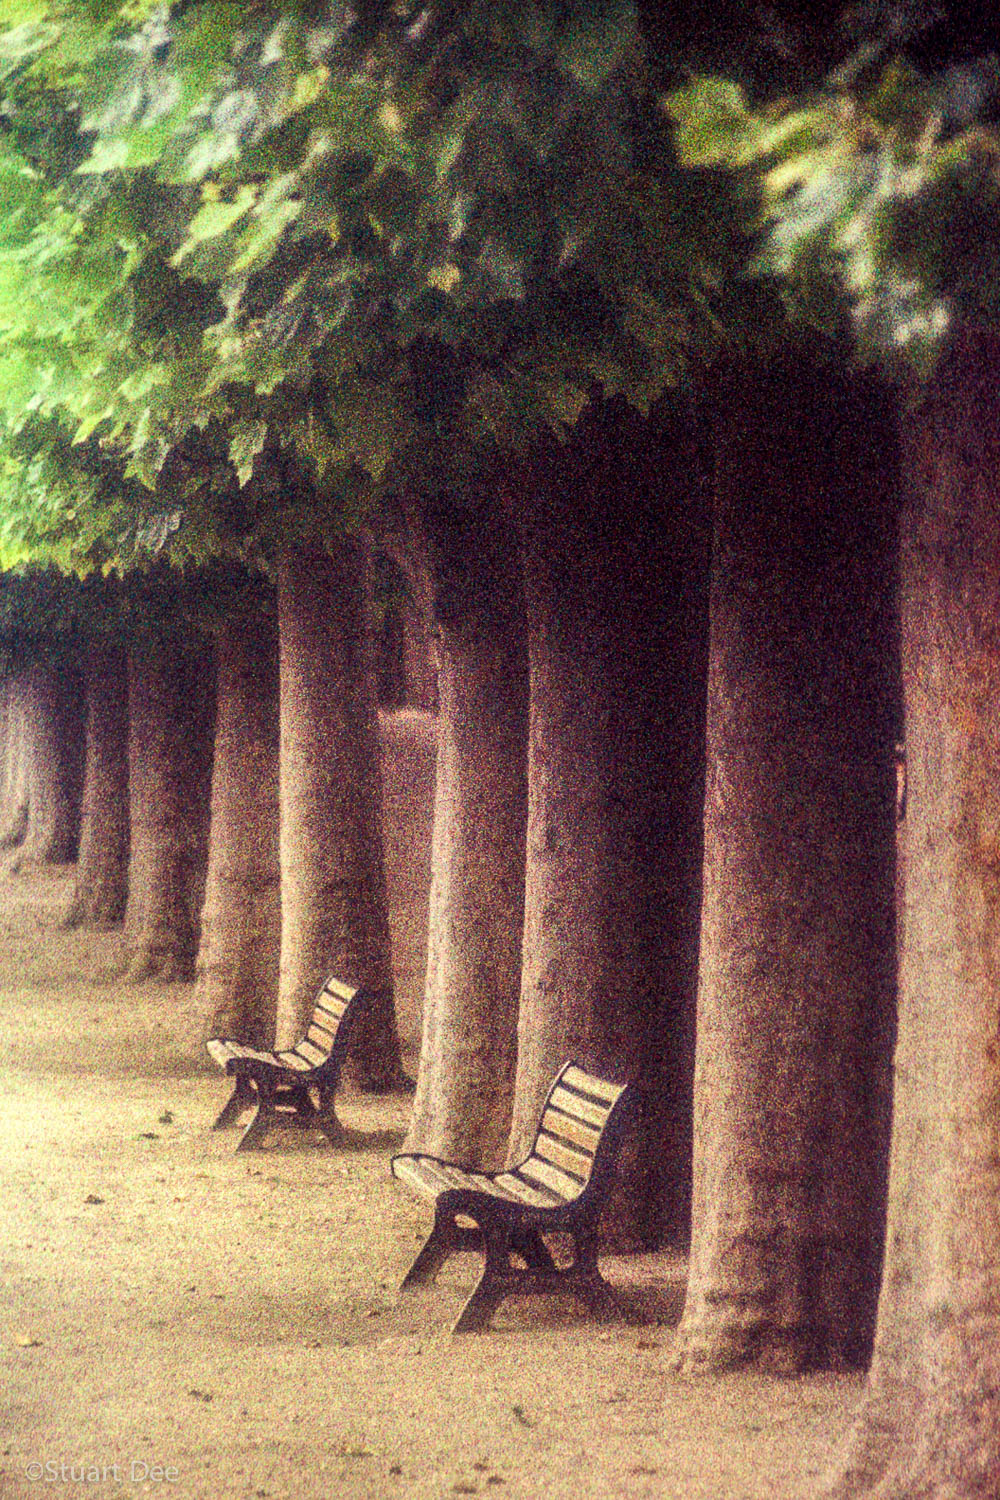 Trees And Benches, Jardin des Plantes, Paris, France